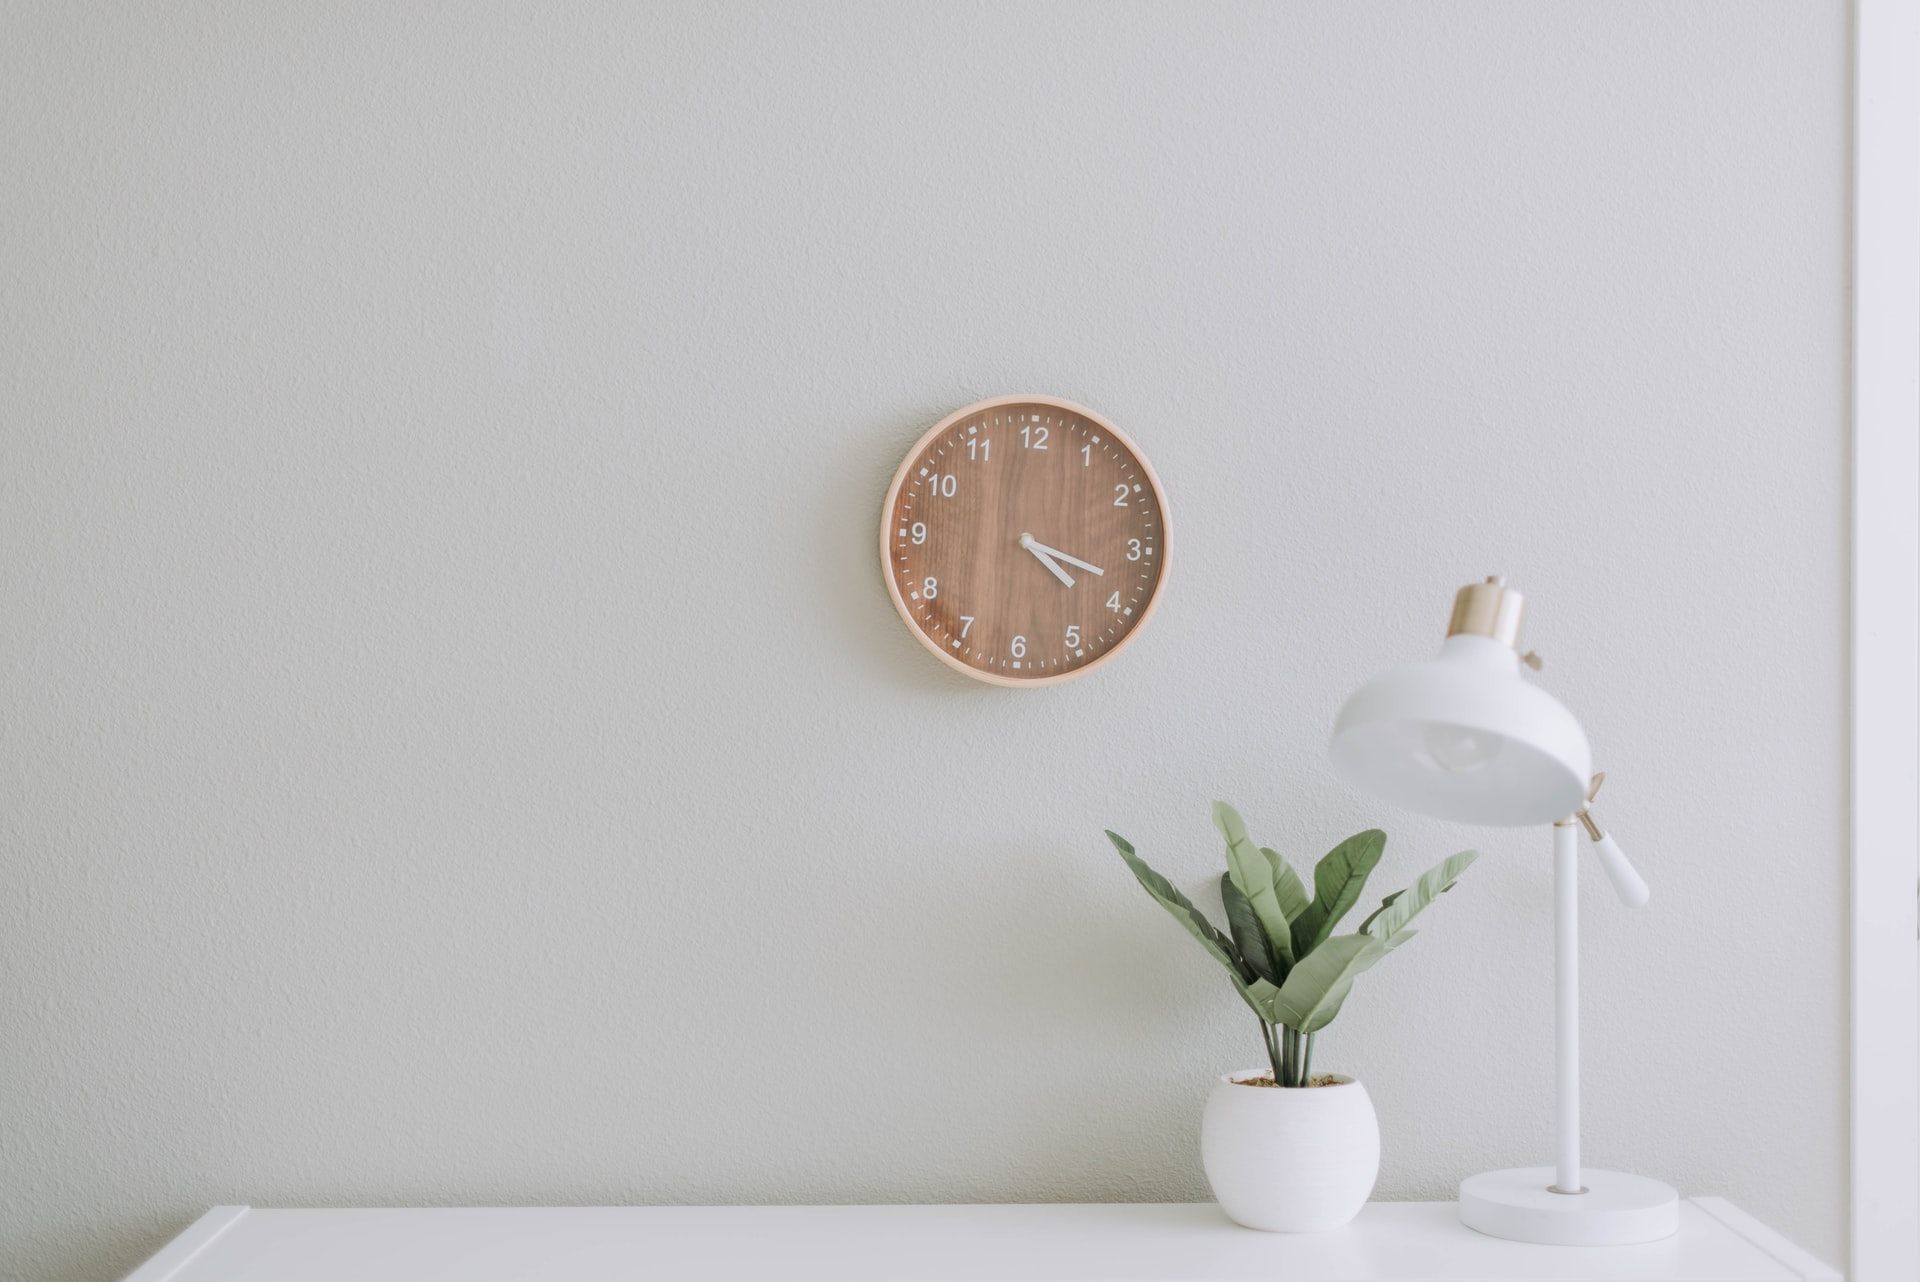 Changes to Working Hours